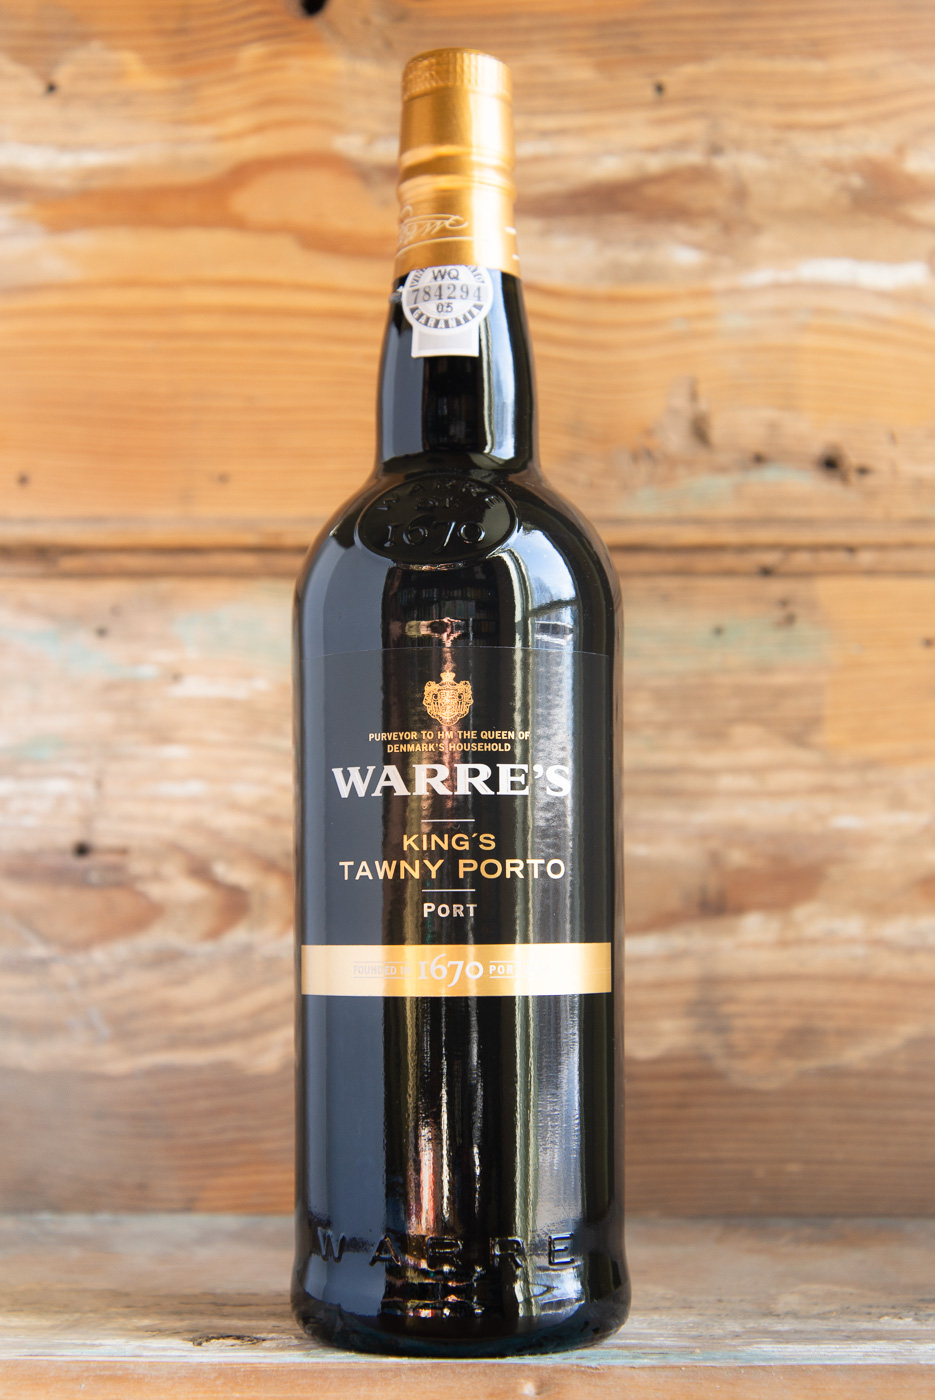 Warre's King's Tawny NV - Retail: $17.95 | Sale: $16.15Warre's Kings Tawny is aged in oak casks for an average of 3 years and then bottled when ready to drink. In the glass it greets you with a beautiful amber color and a slightly nutty character on the nose. Flavors of cocoa powder, plum tart, and dark coffee smooth out onto the palate. It drinks pure and fresh with a luscious, long finish.